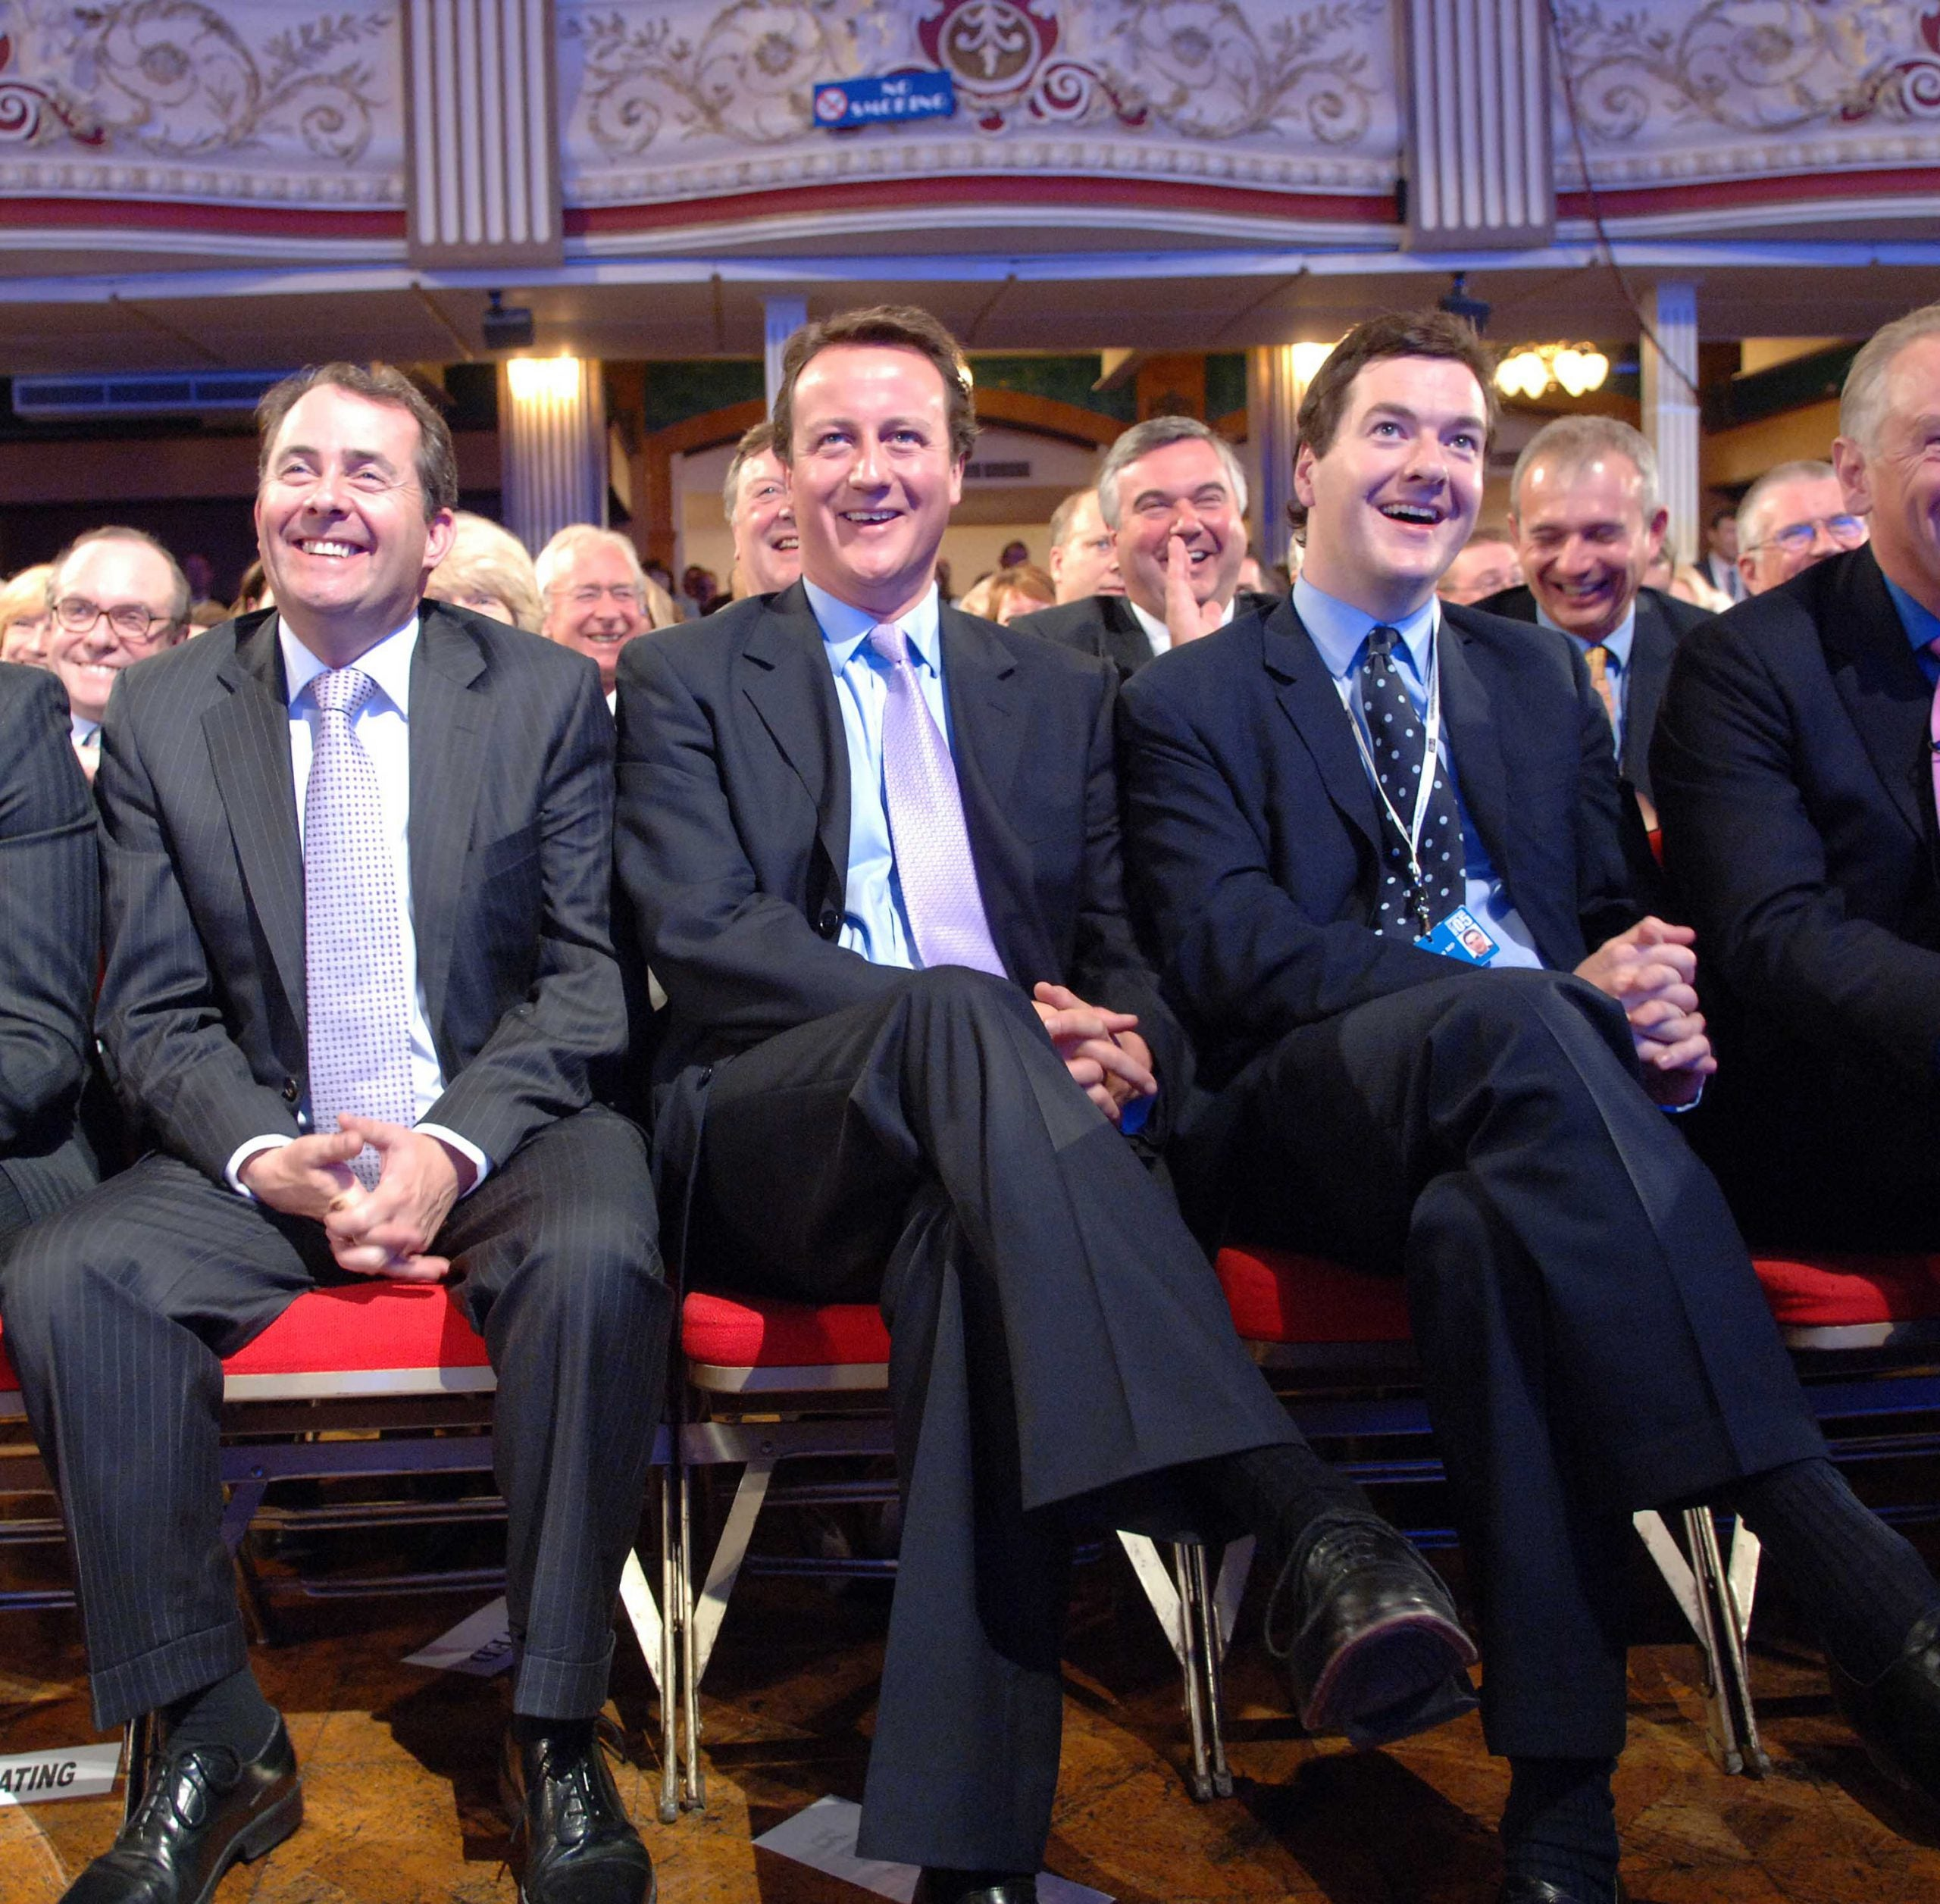 Sasha Swire's diaries reveal the crass elitism of the Cameron government